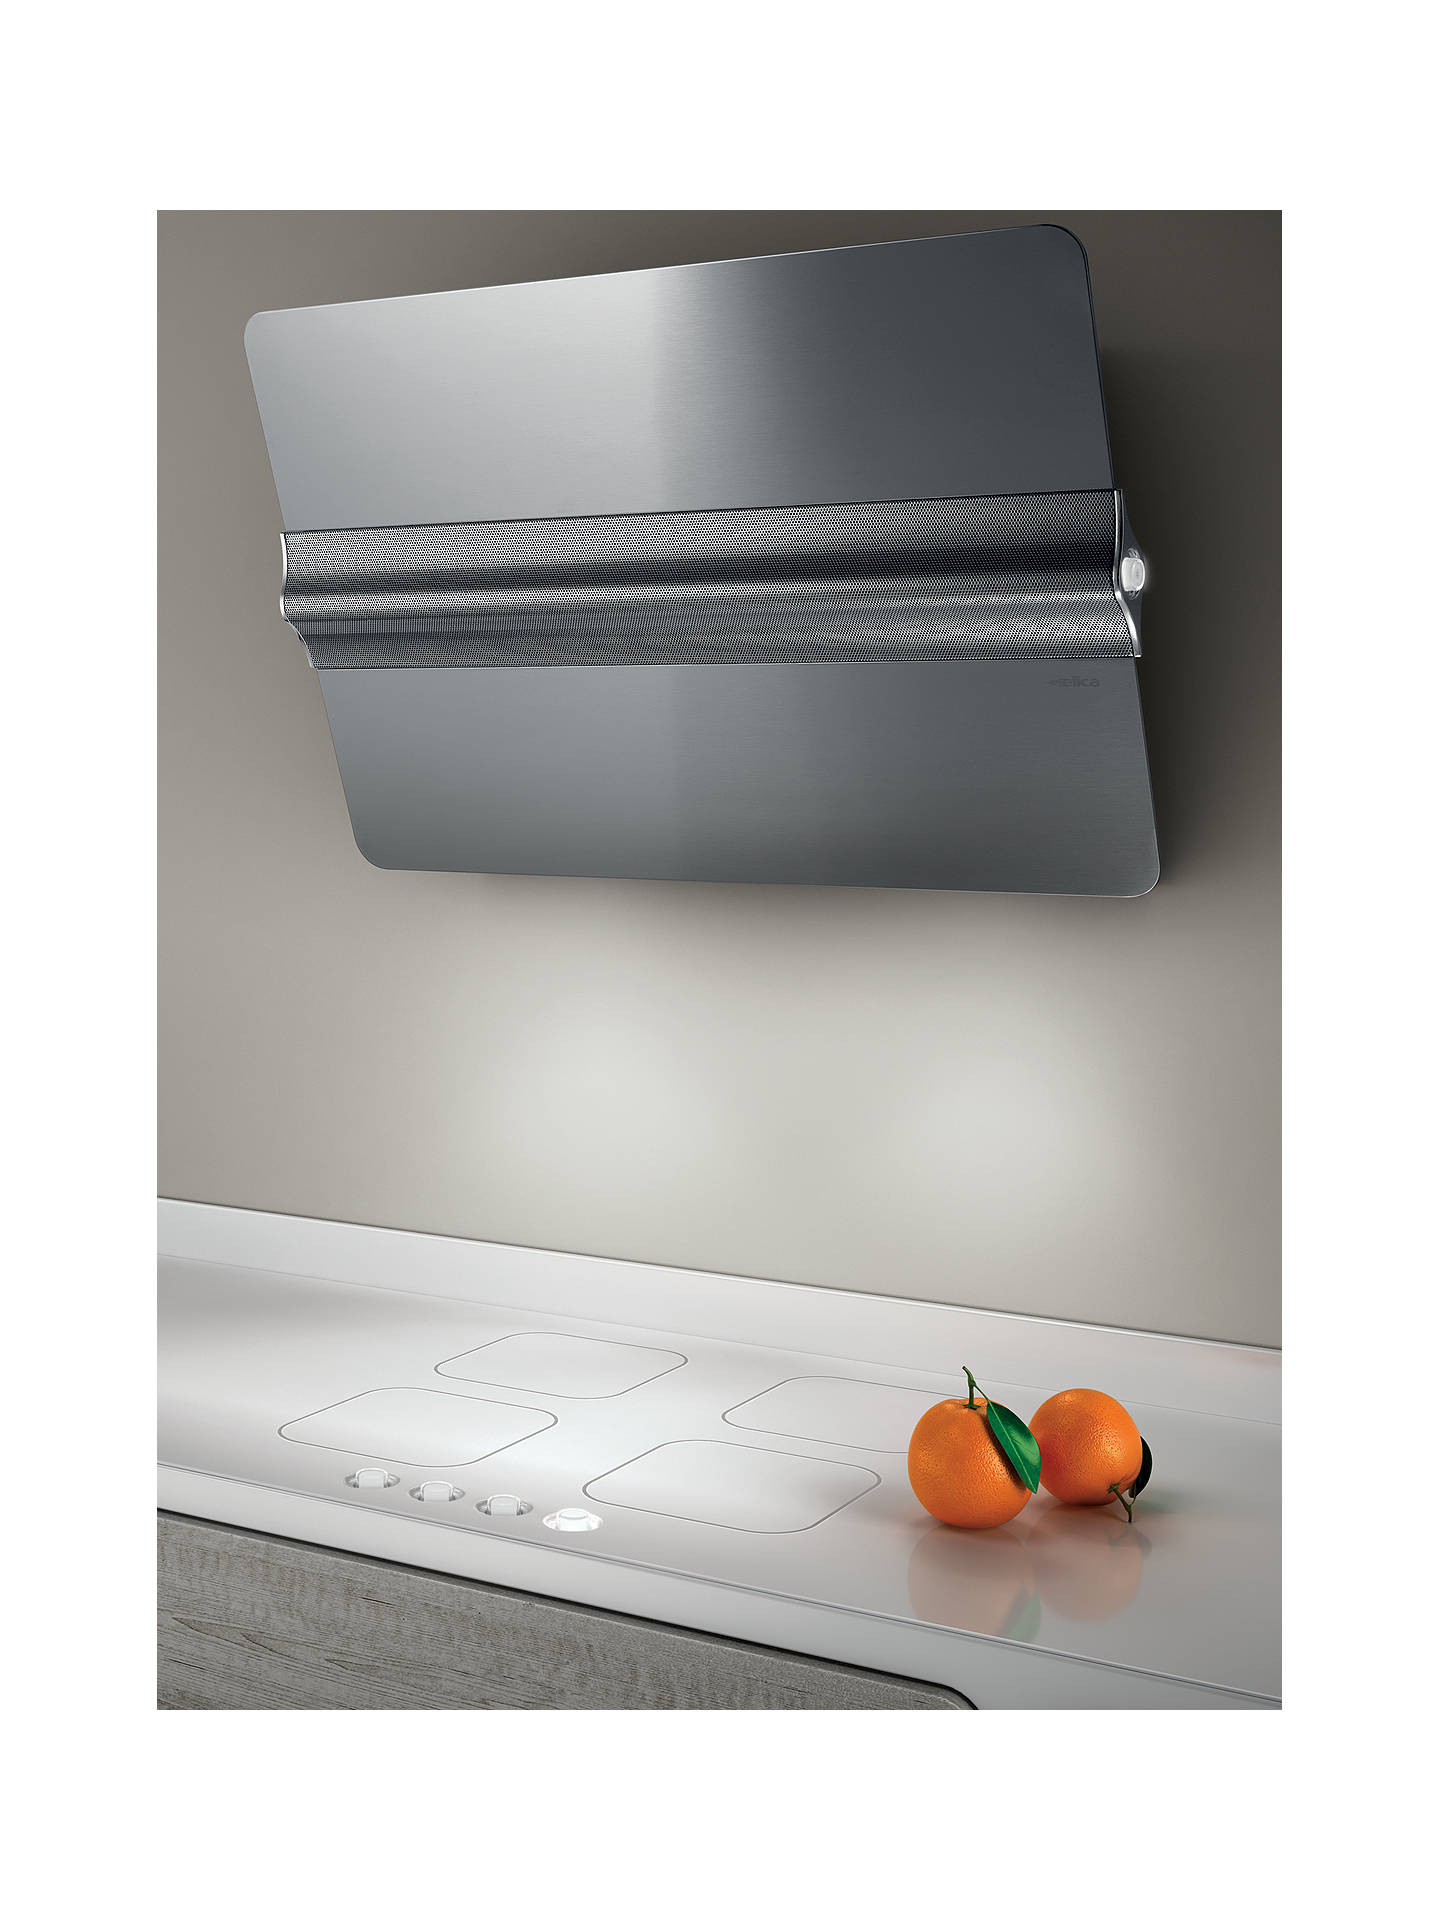 BuyElica Barre Cooker Hood, Stainless Steel Online at johnlewis.com